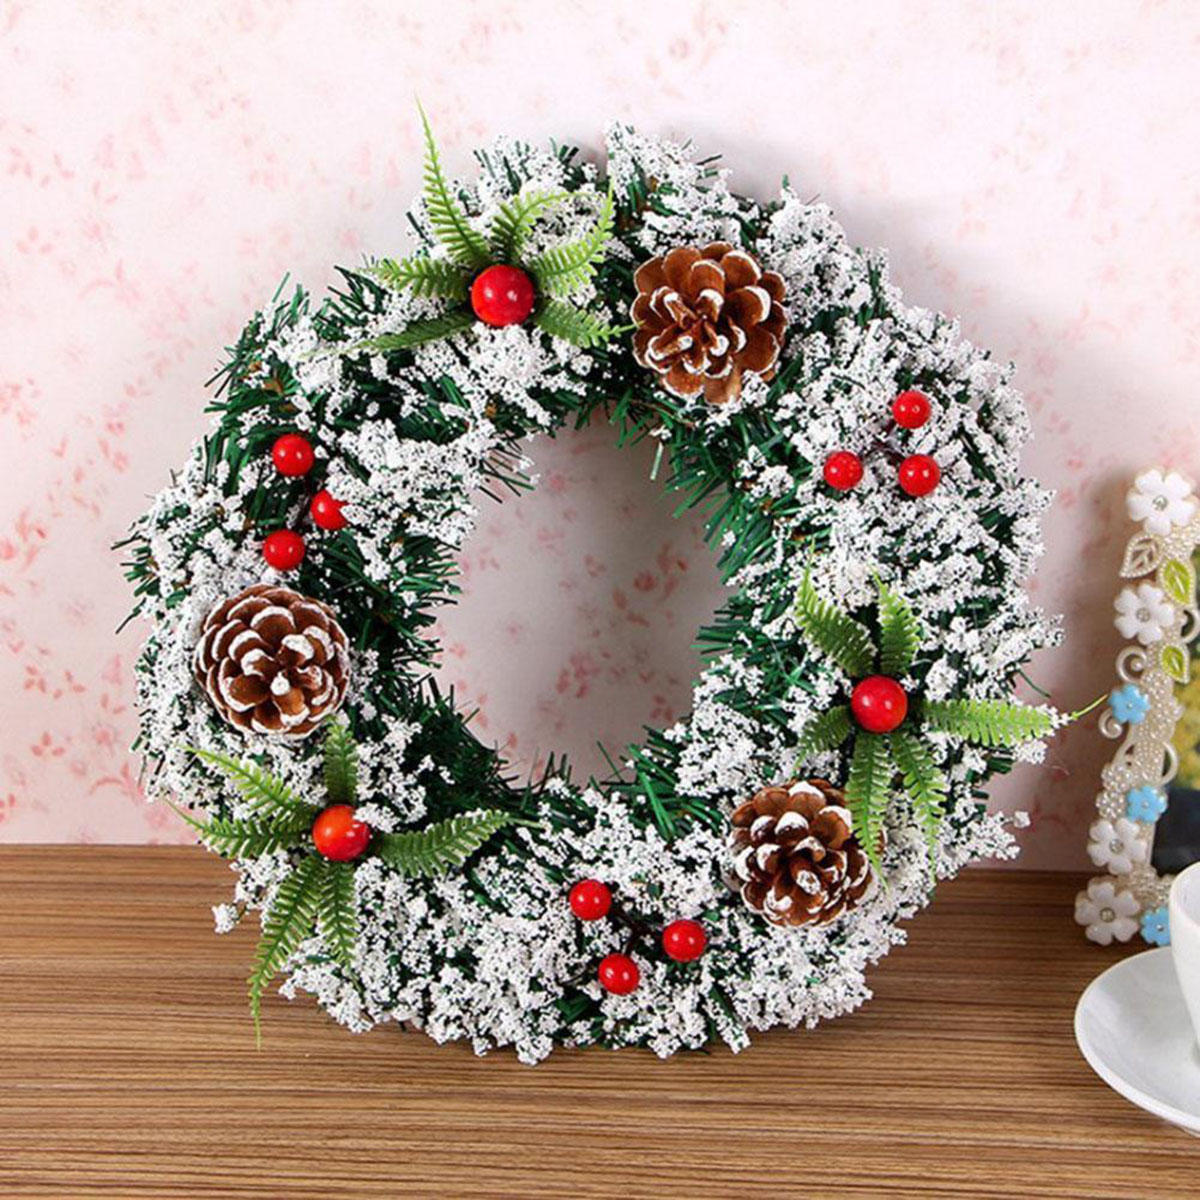 Christmas Wreath Decor For Xmas Party Door Wall Hanging Home Garland Ornament Christmas Decorations